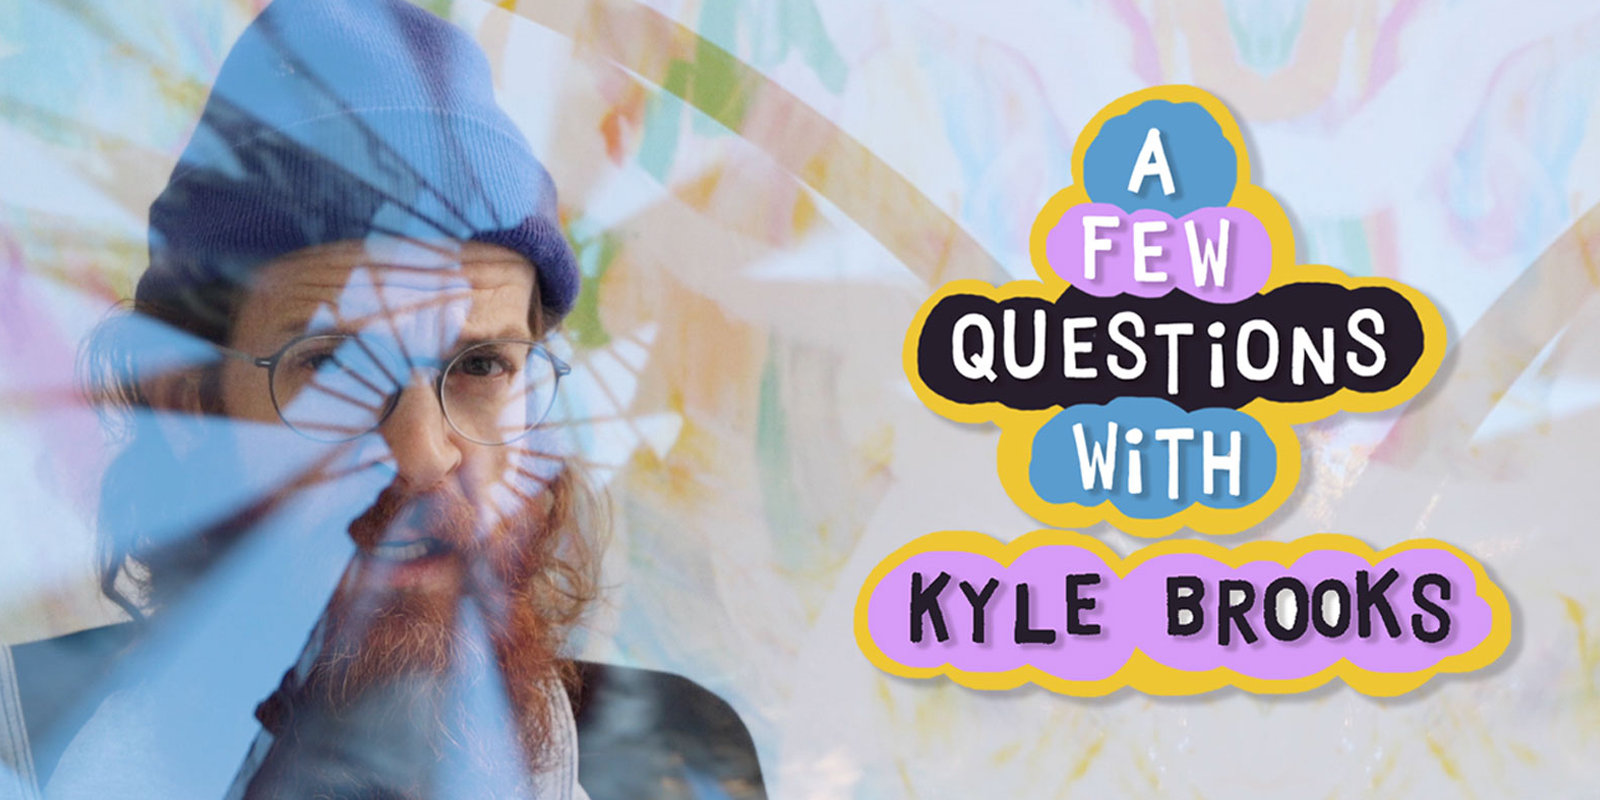 A Few Questions with Kyle Brooks